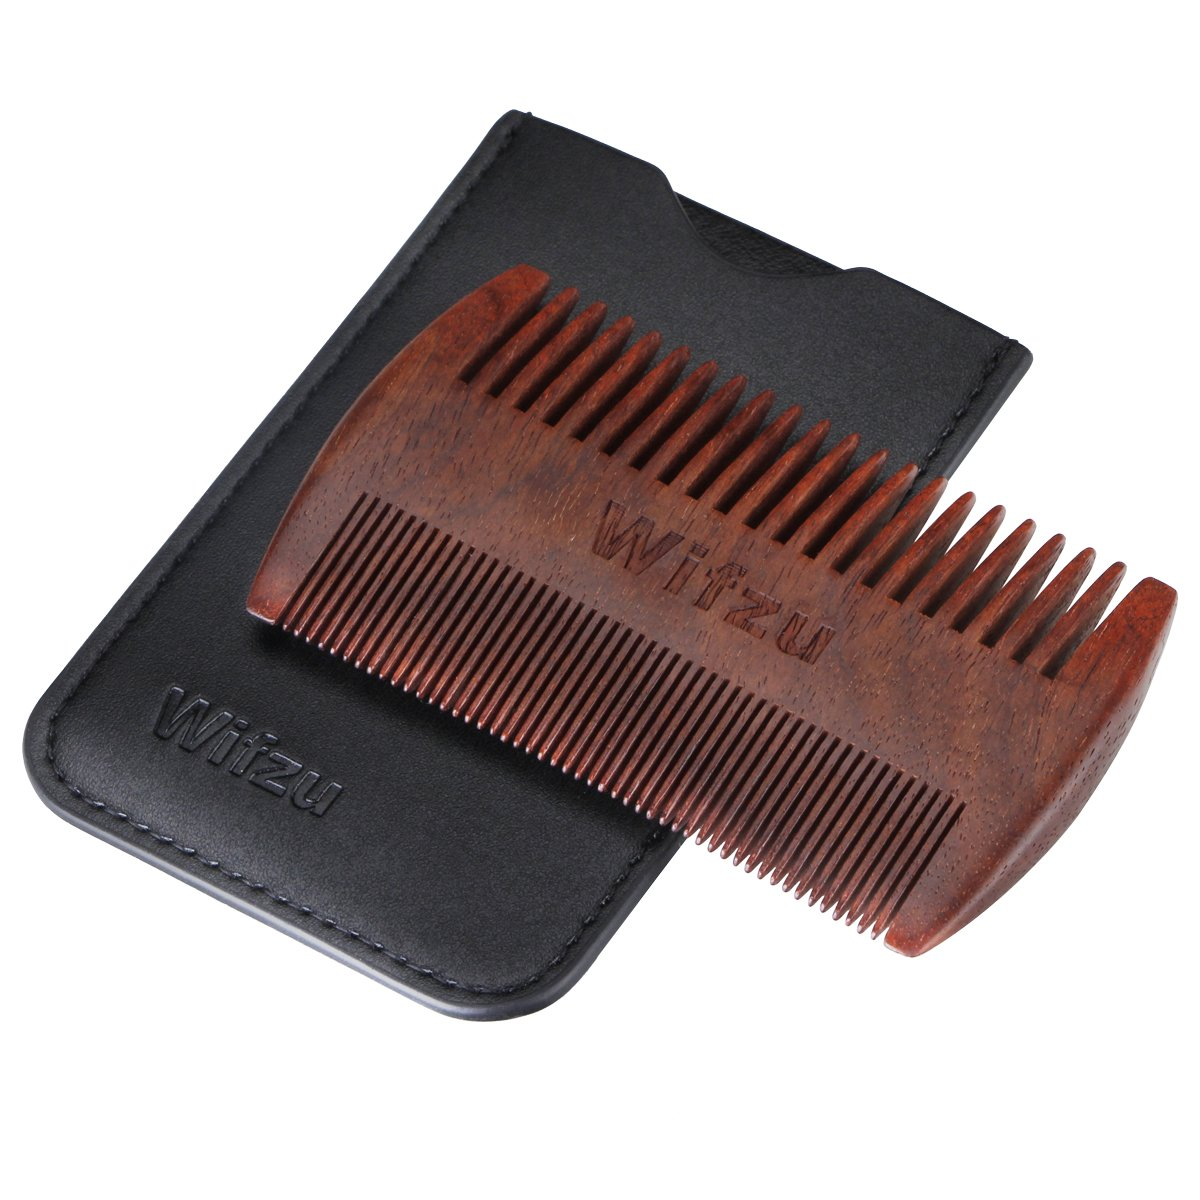 (Clearance) Anti Static Wood Pocket Comb & Black Leather Case By Wifzu,Wooden Beard Comb for men, Dual Action Beard Comb with Fine & Coarse Teeth For Beard Hair &Mustaches,Perfect for Balms and Oils Weichengfa